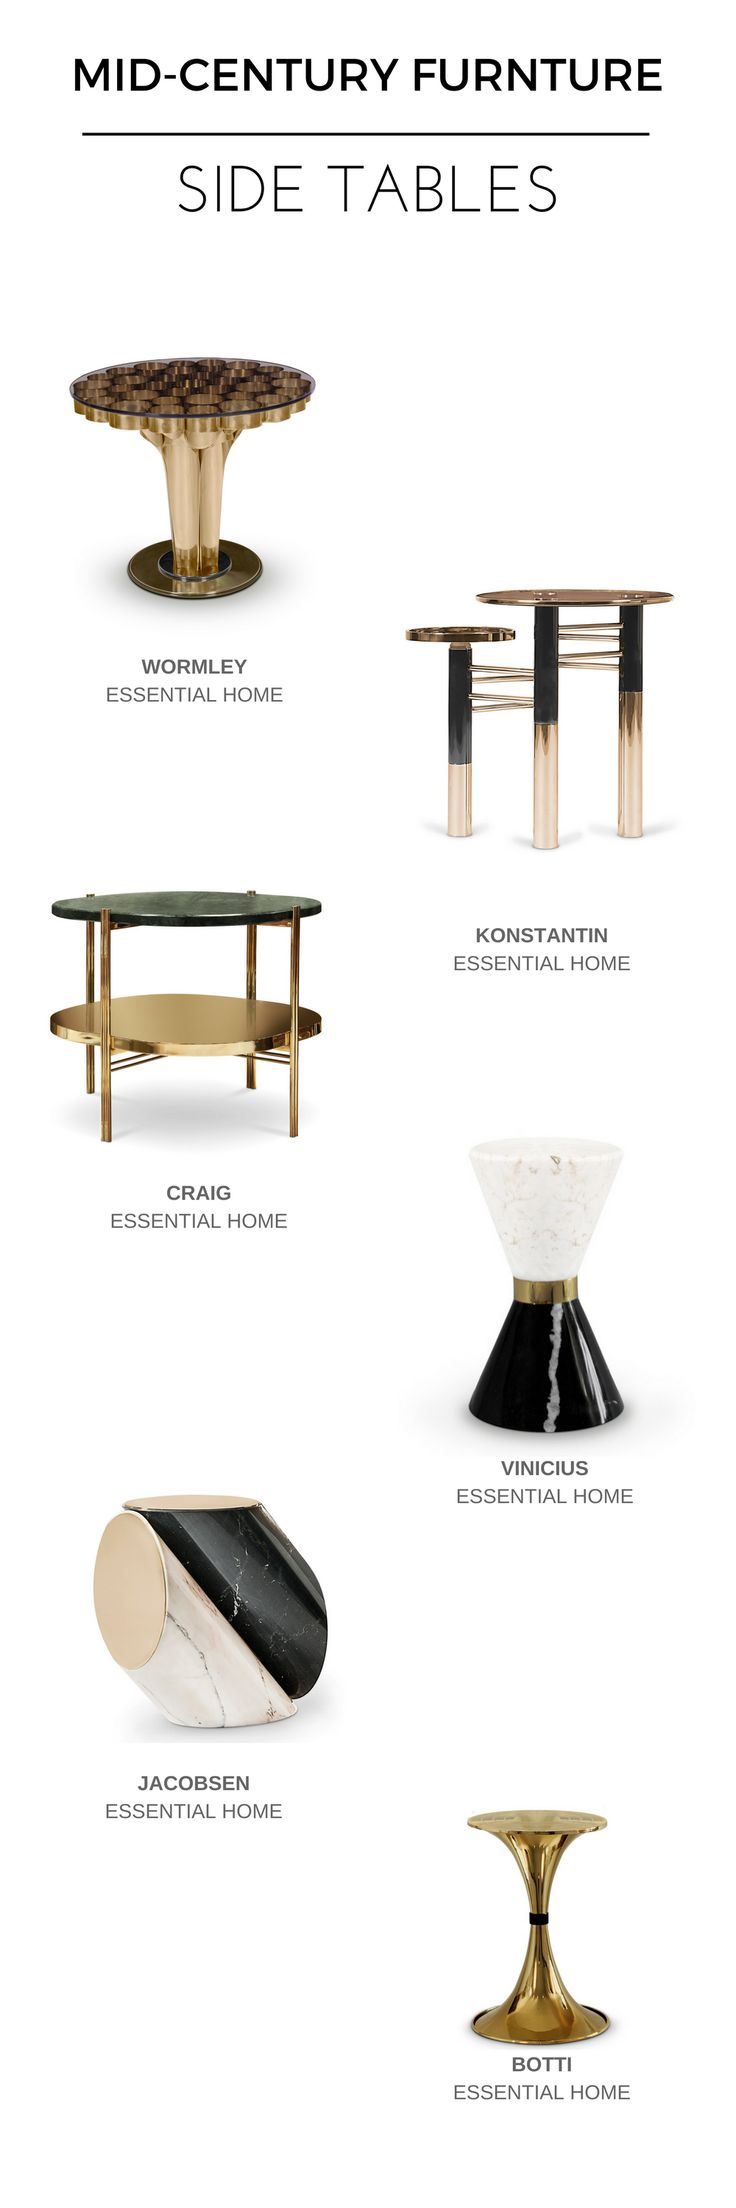 SIDE TABLES INSPIRATION